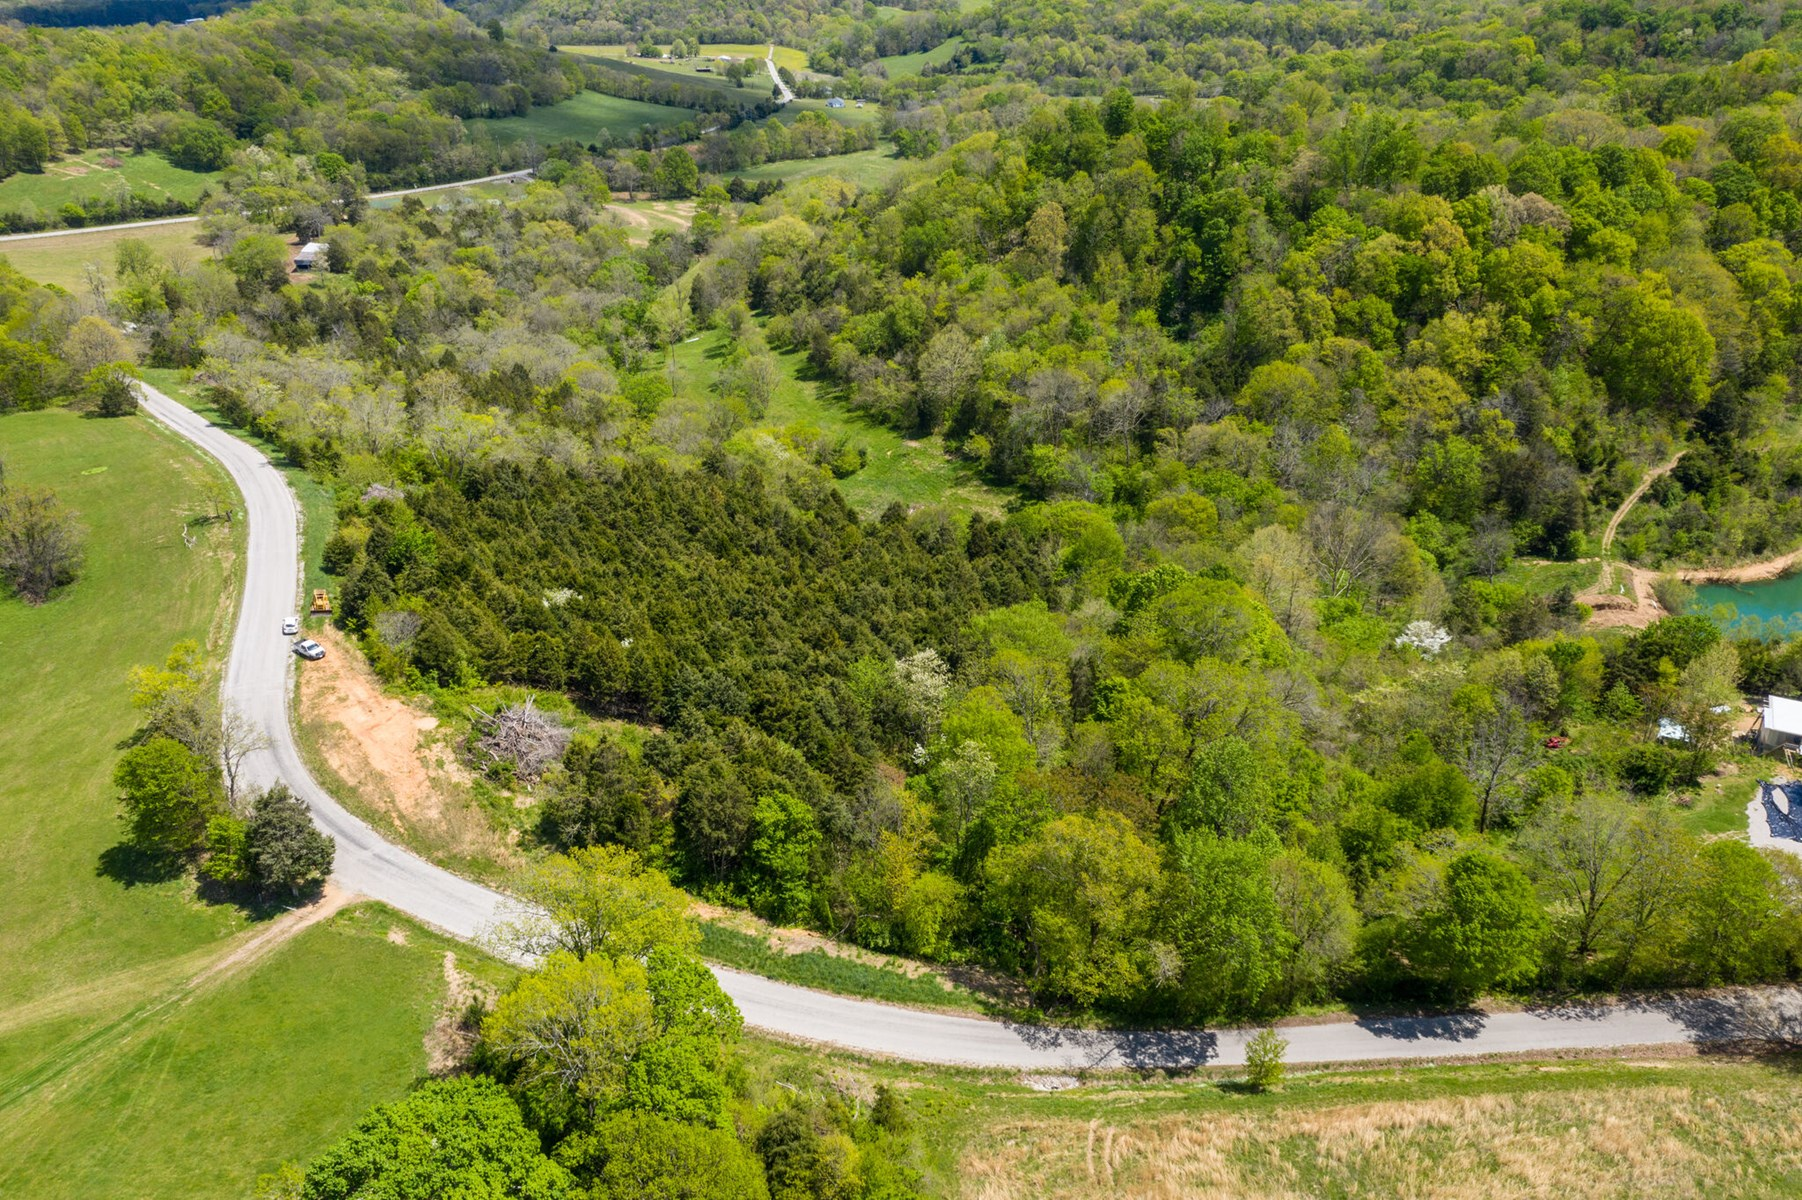 Land with Acreage for Sale in Culleoka, Tennessee